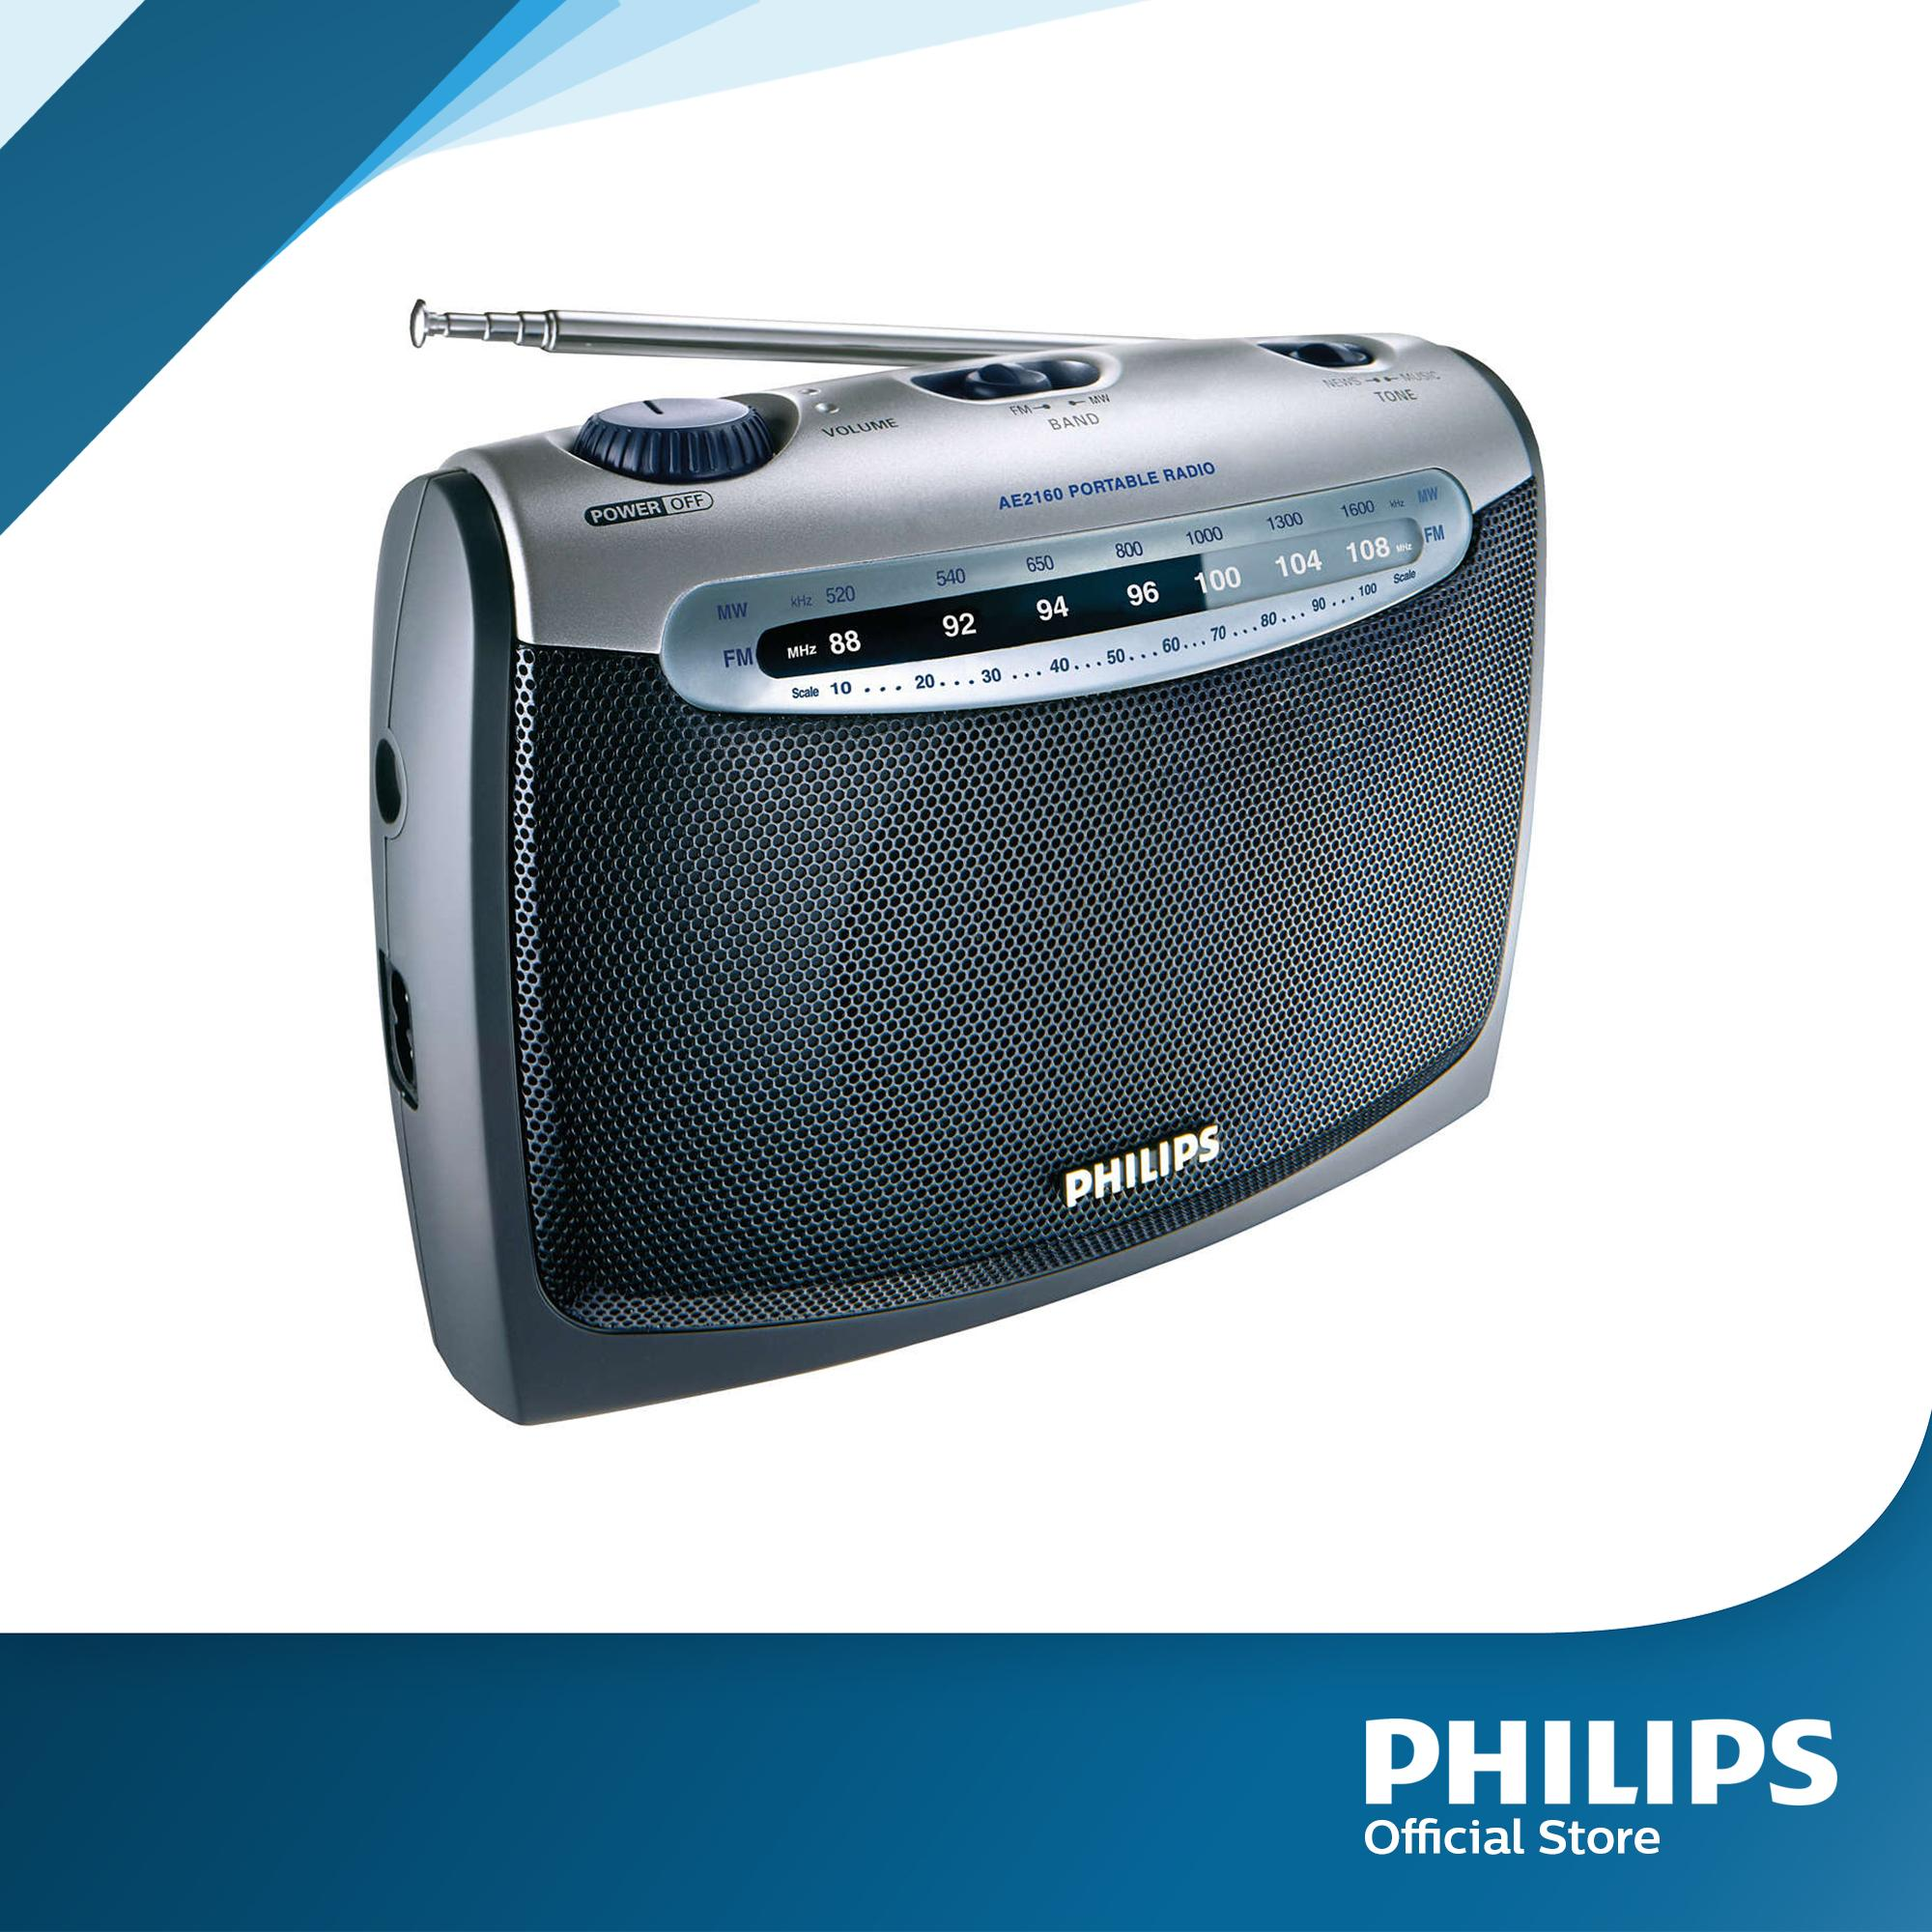 Speaker For Sale Bluetooth Prices Brands Specs In China Digital Fm Receiver Circuit Board Assembly Production Philips Ae2160 Am Portable Radio Silver